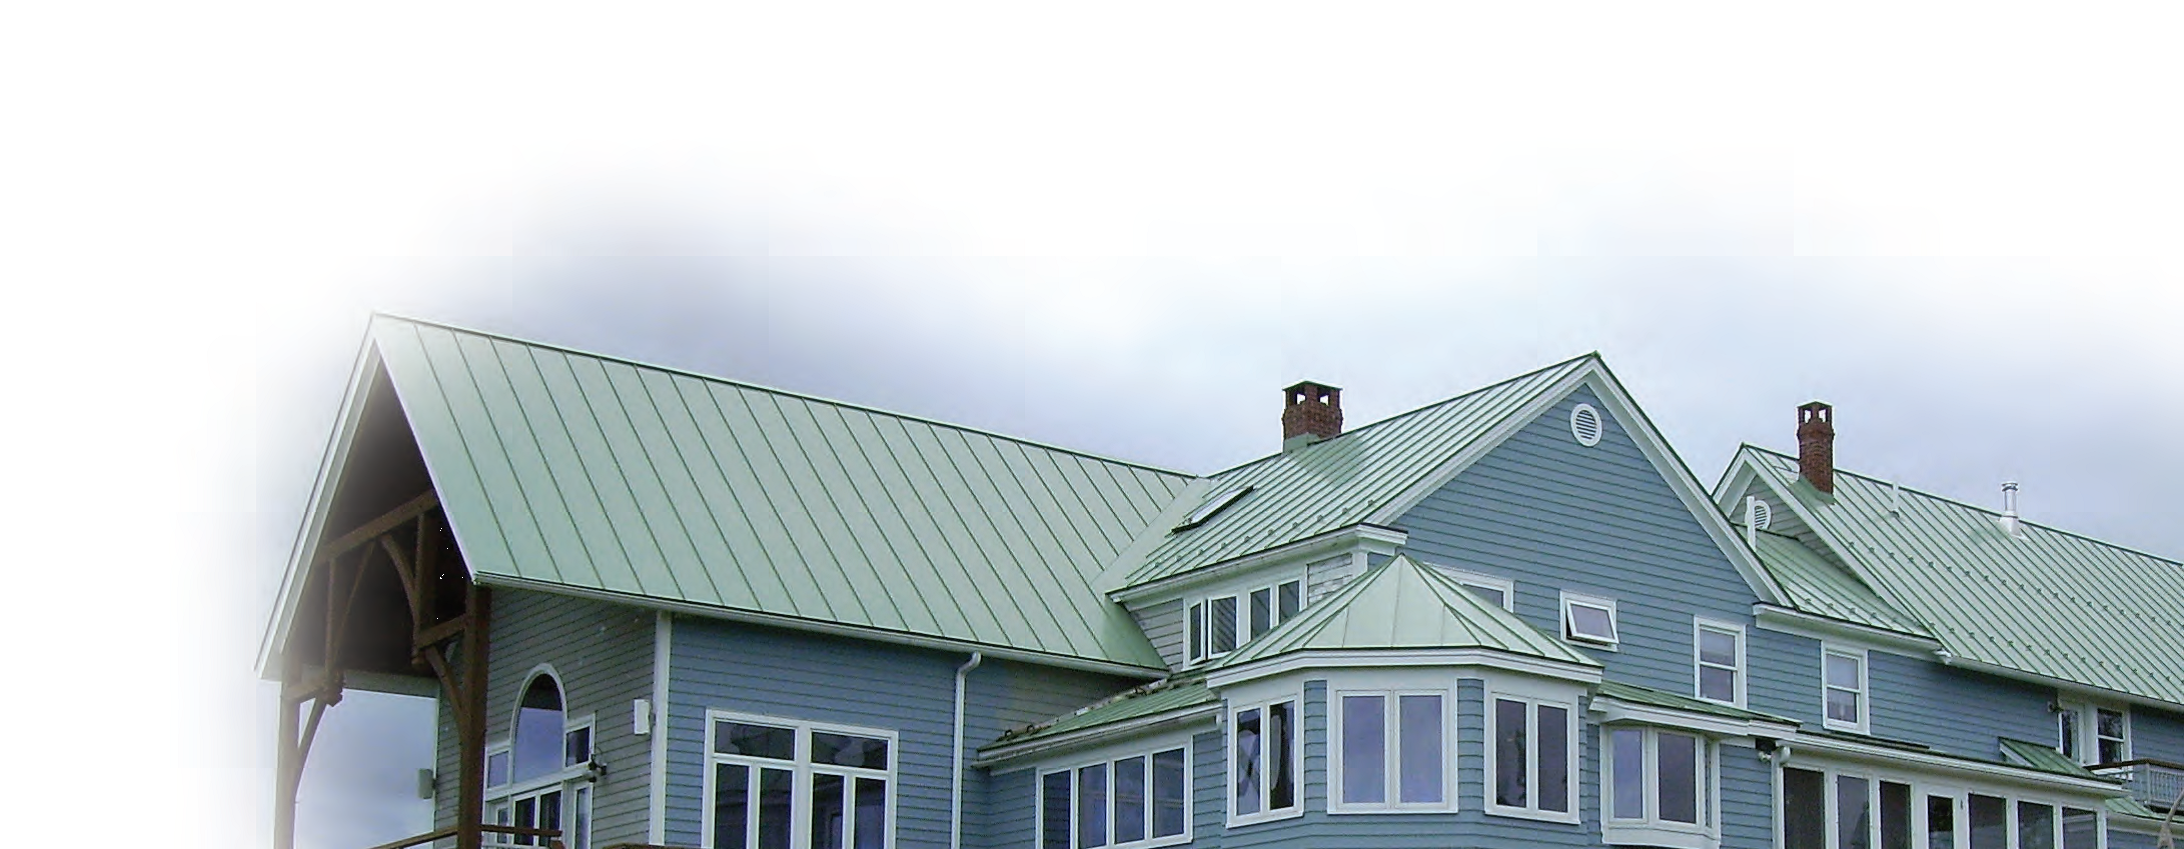 Ohio Metal Roofing Teams With Only The Best Amish Quality Craftmanship  Contractors And Installers. The Central Ohio Contractor For Ohio Metal  Roofing Is ...